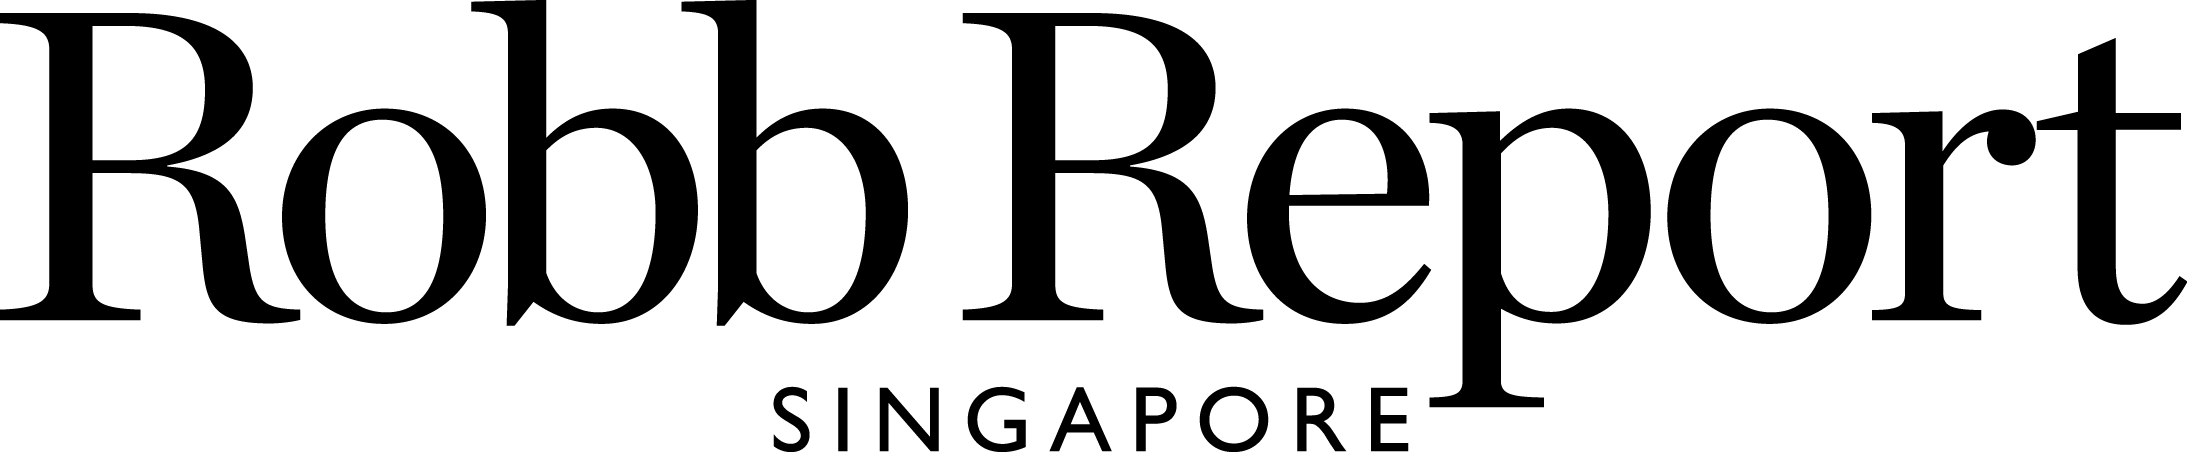 Singapore's leading luxury lifestyle publication | Singapore's leading luxury lifestyle publication | Robb Report Singapore